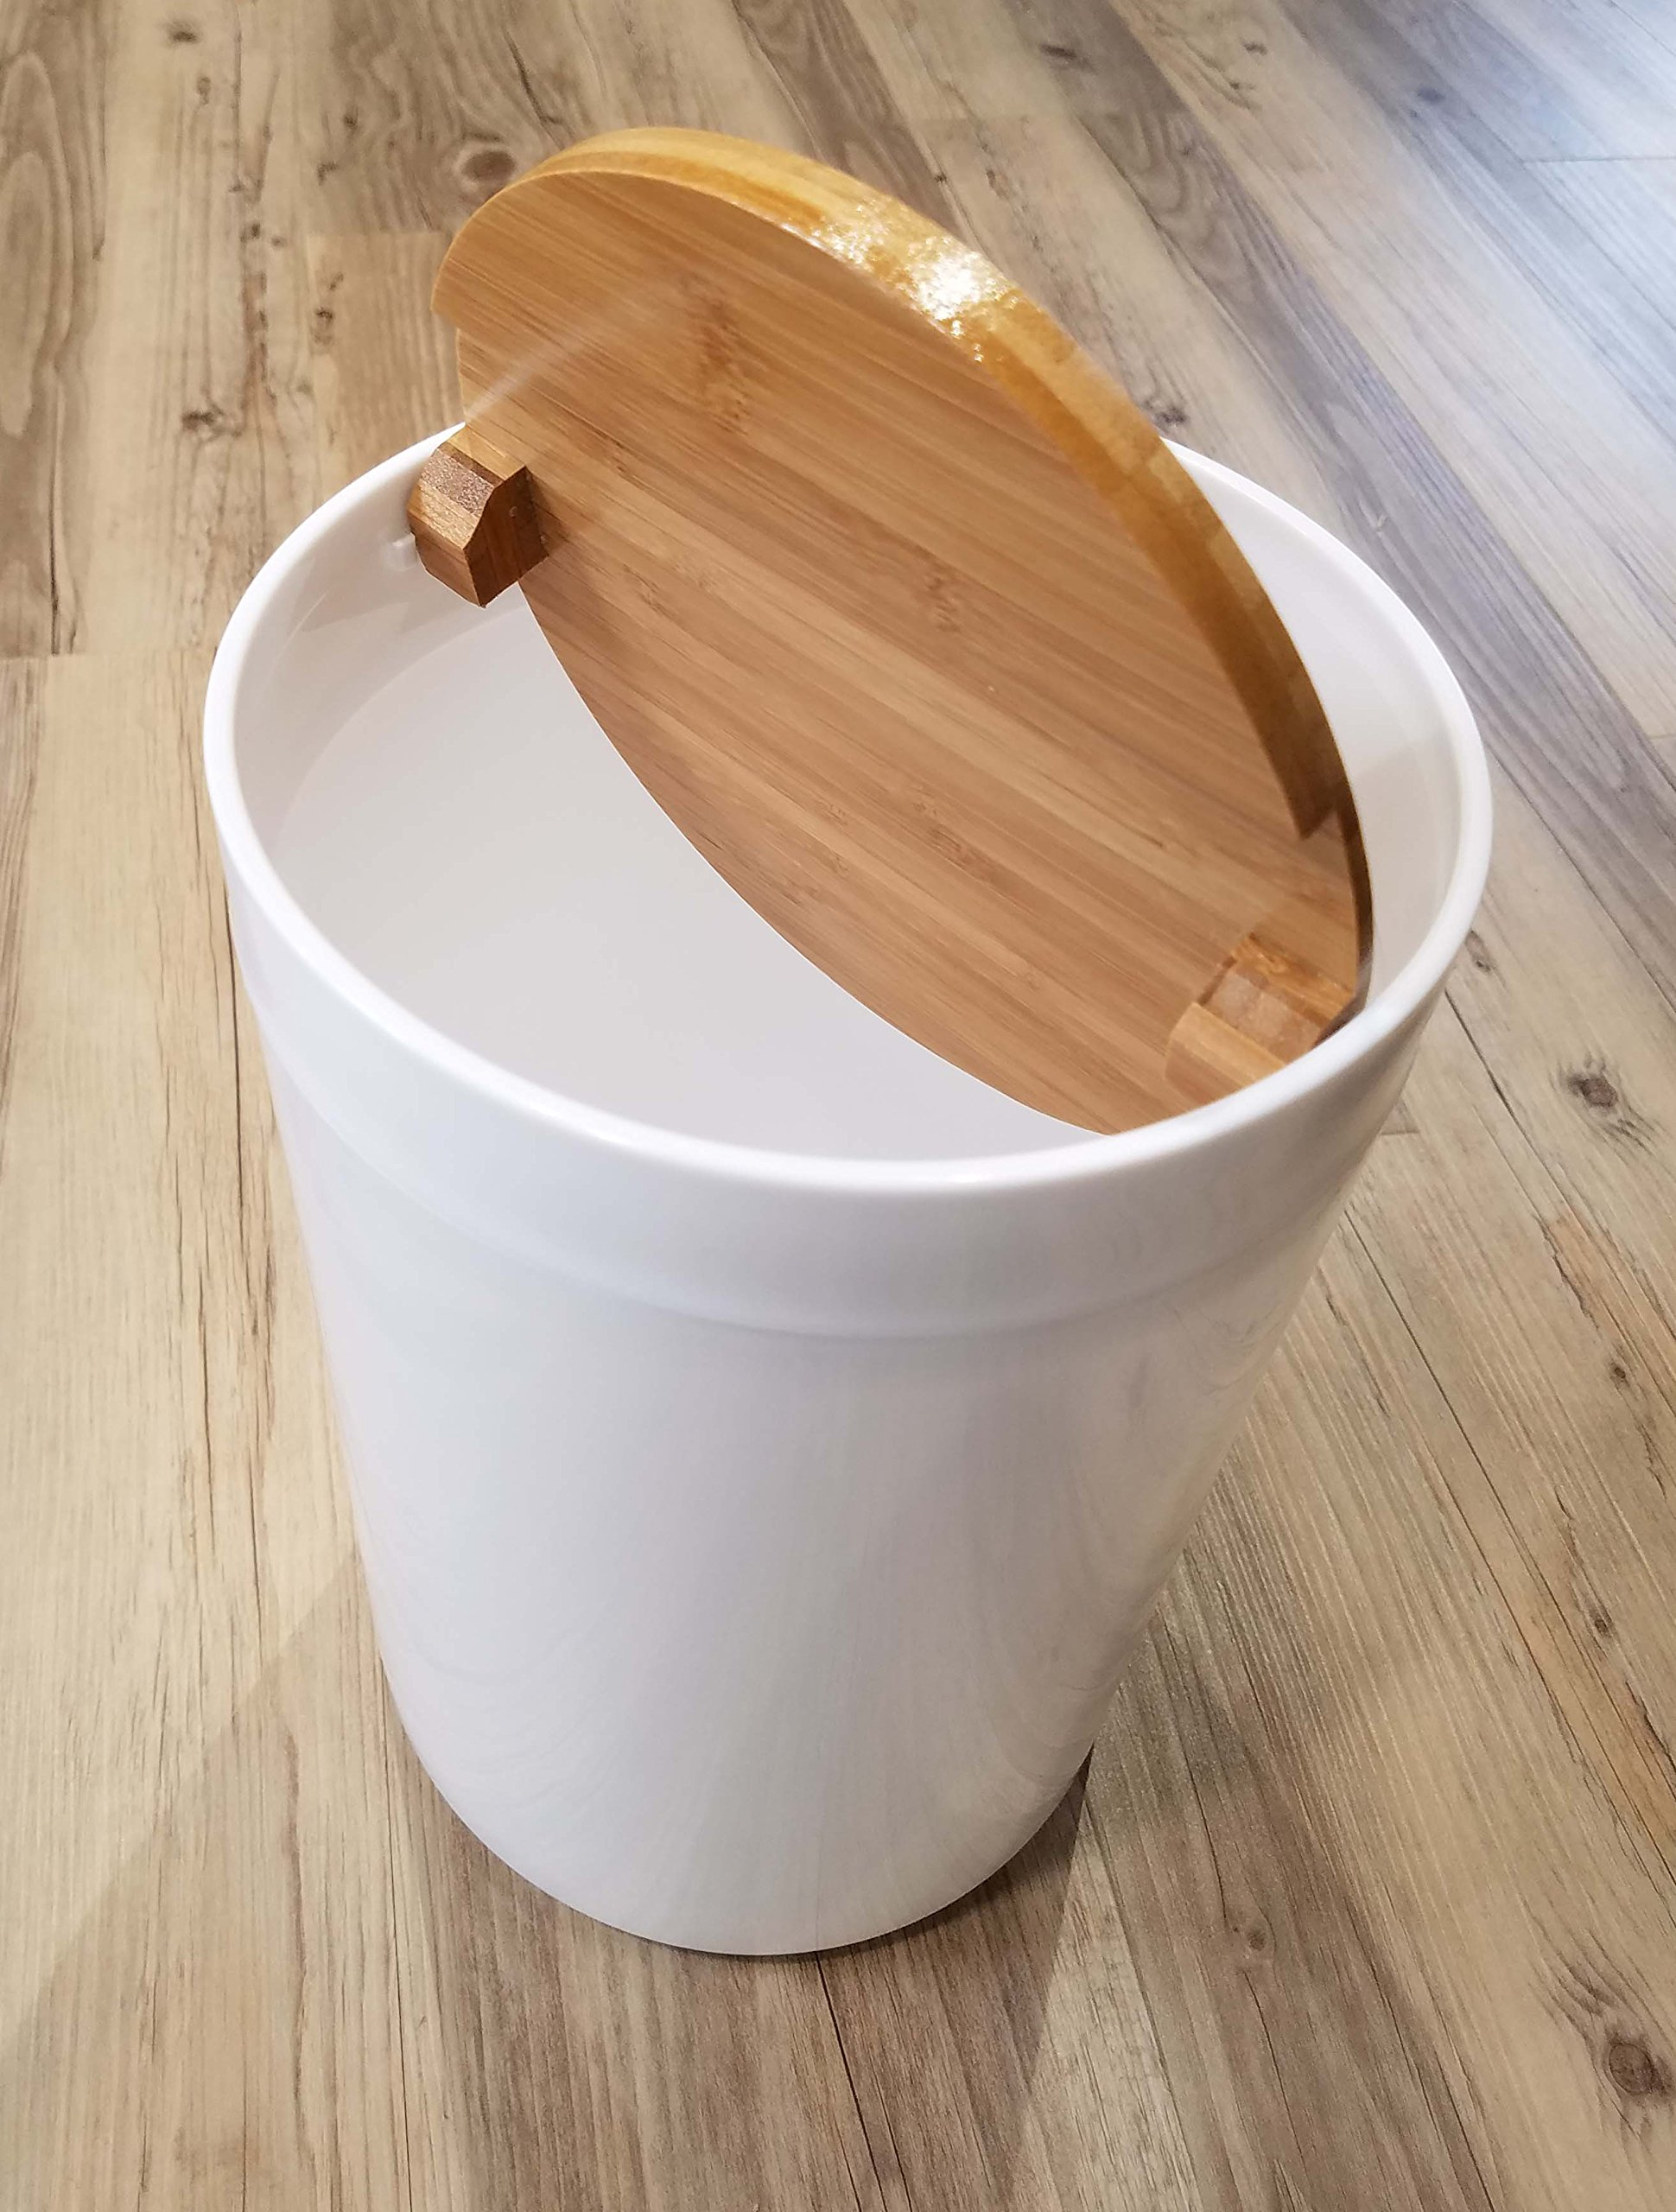 EVIDECO Round Bathroom Floor Trash Can Padang, White/Brown by EVIDECO (Image #3)